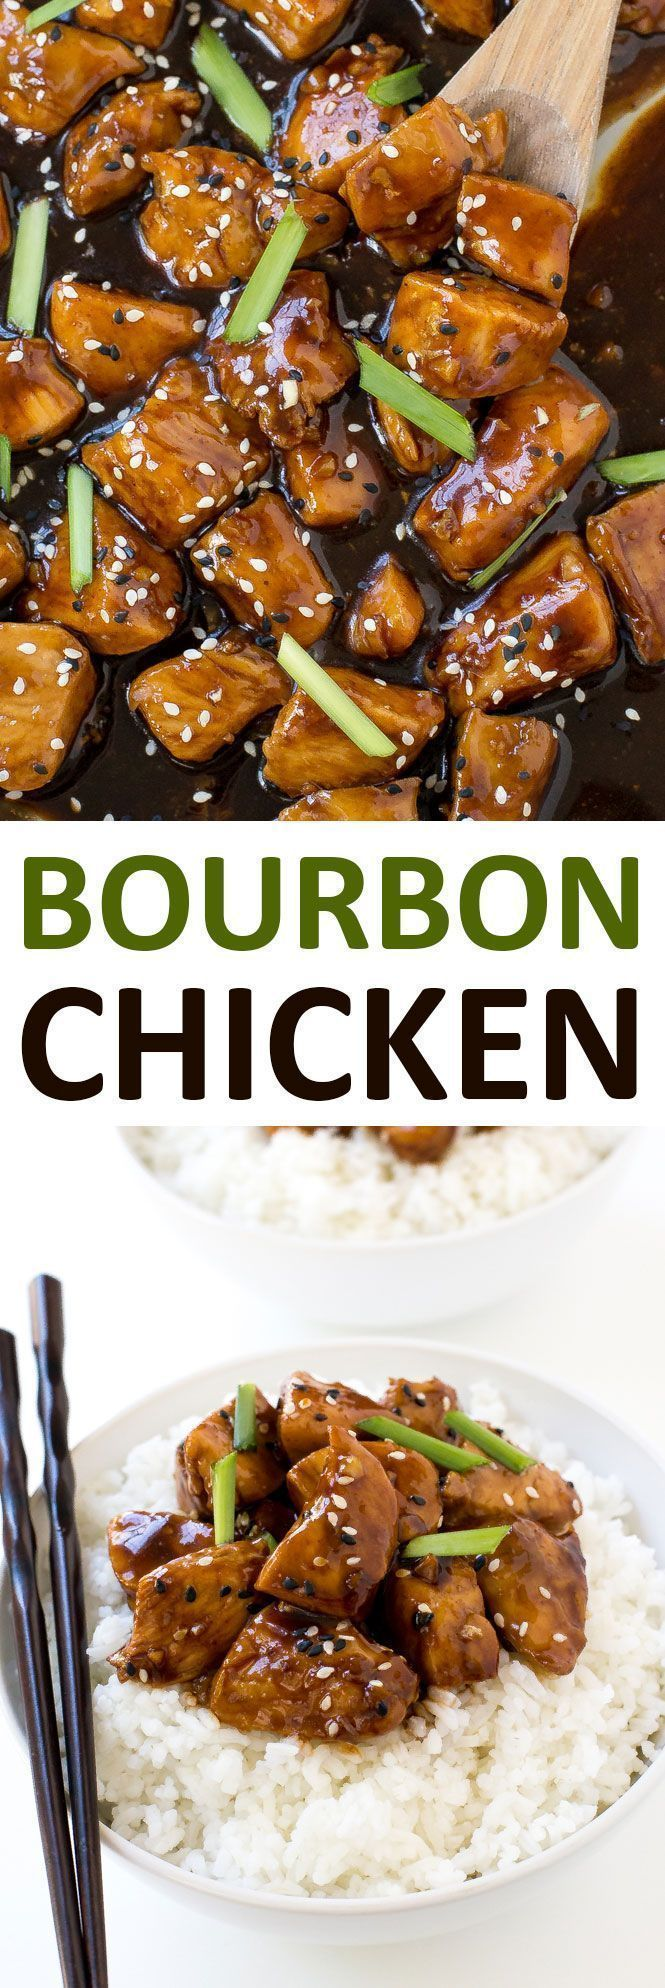 Super Easy One Pan Bourbon Chicken. Serve with rice and noodles to make it a meal!   chefsavvy.com #recipe #bourbon #chicken #dinner